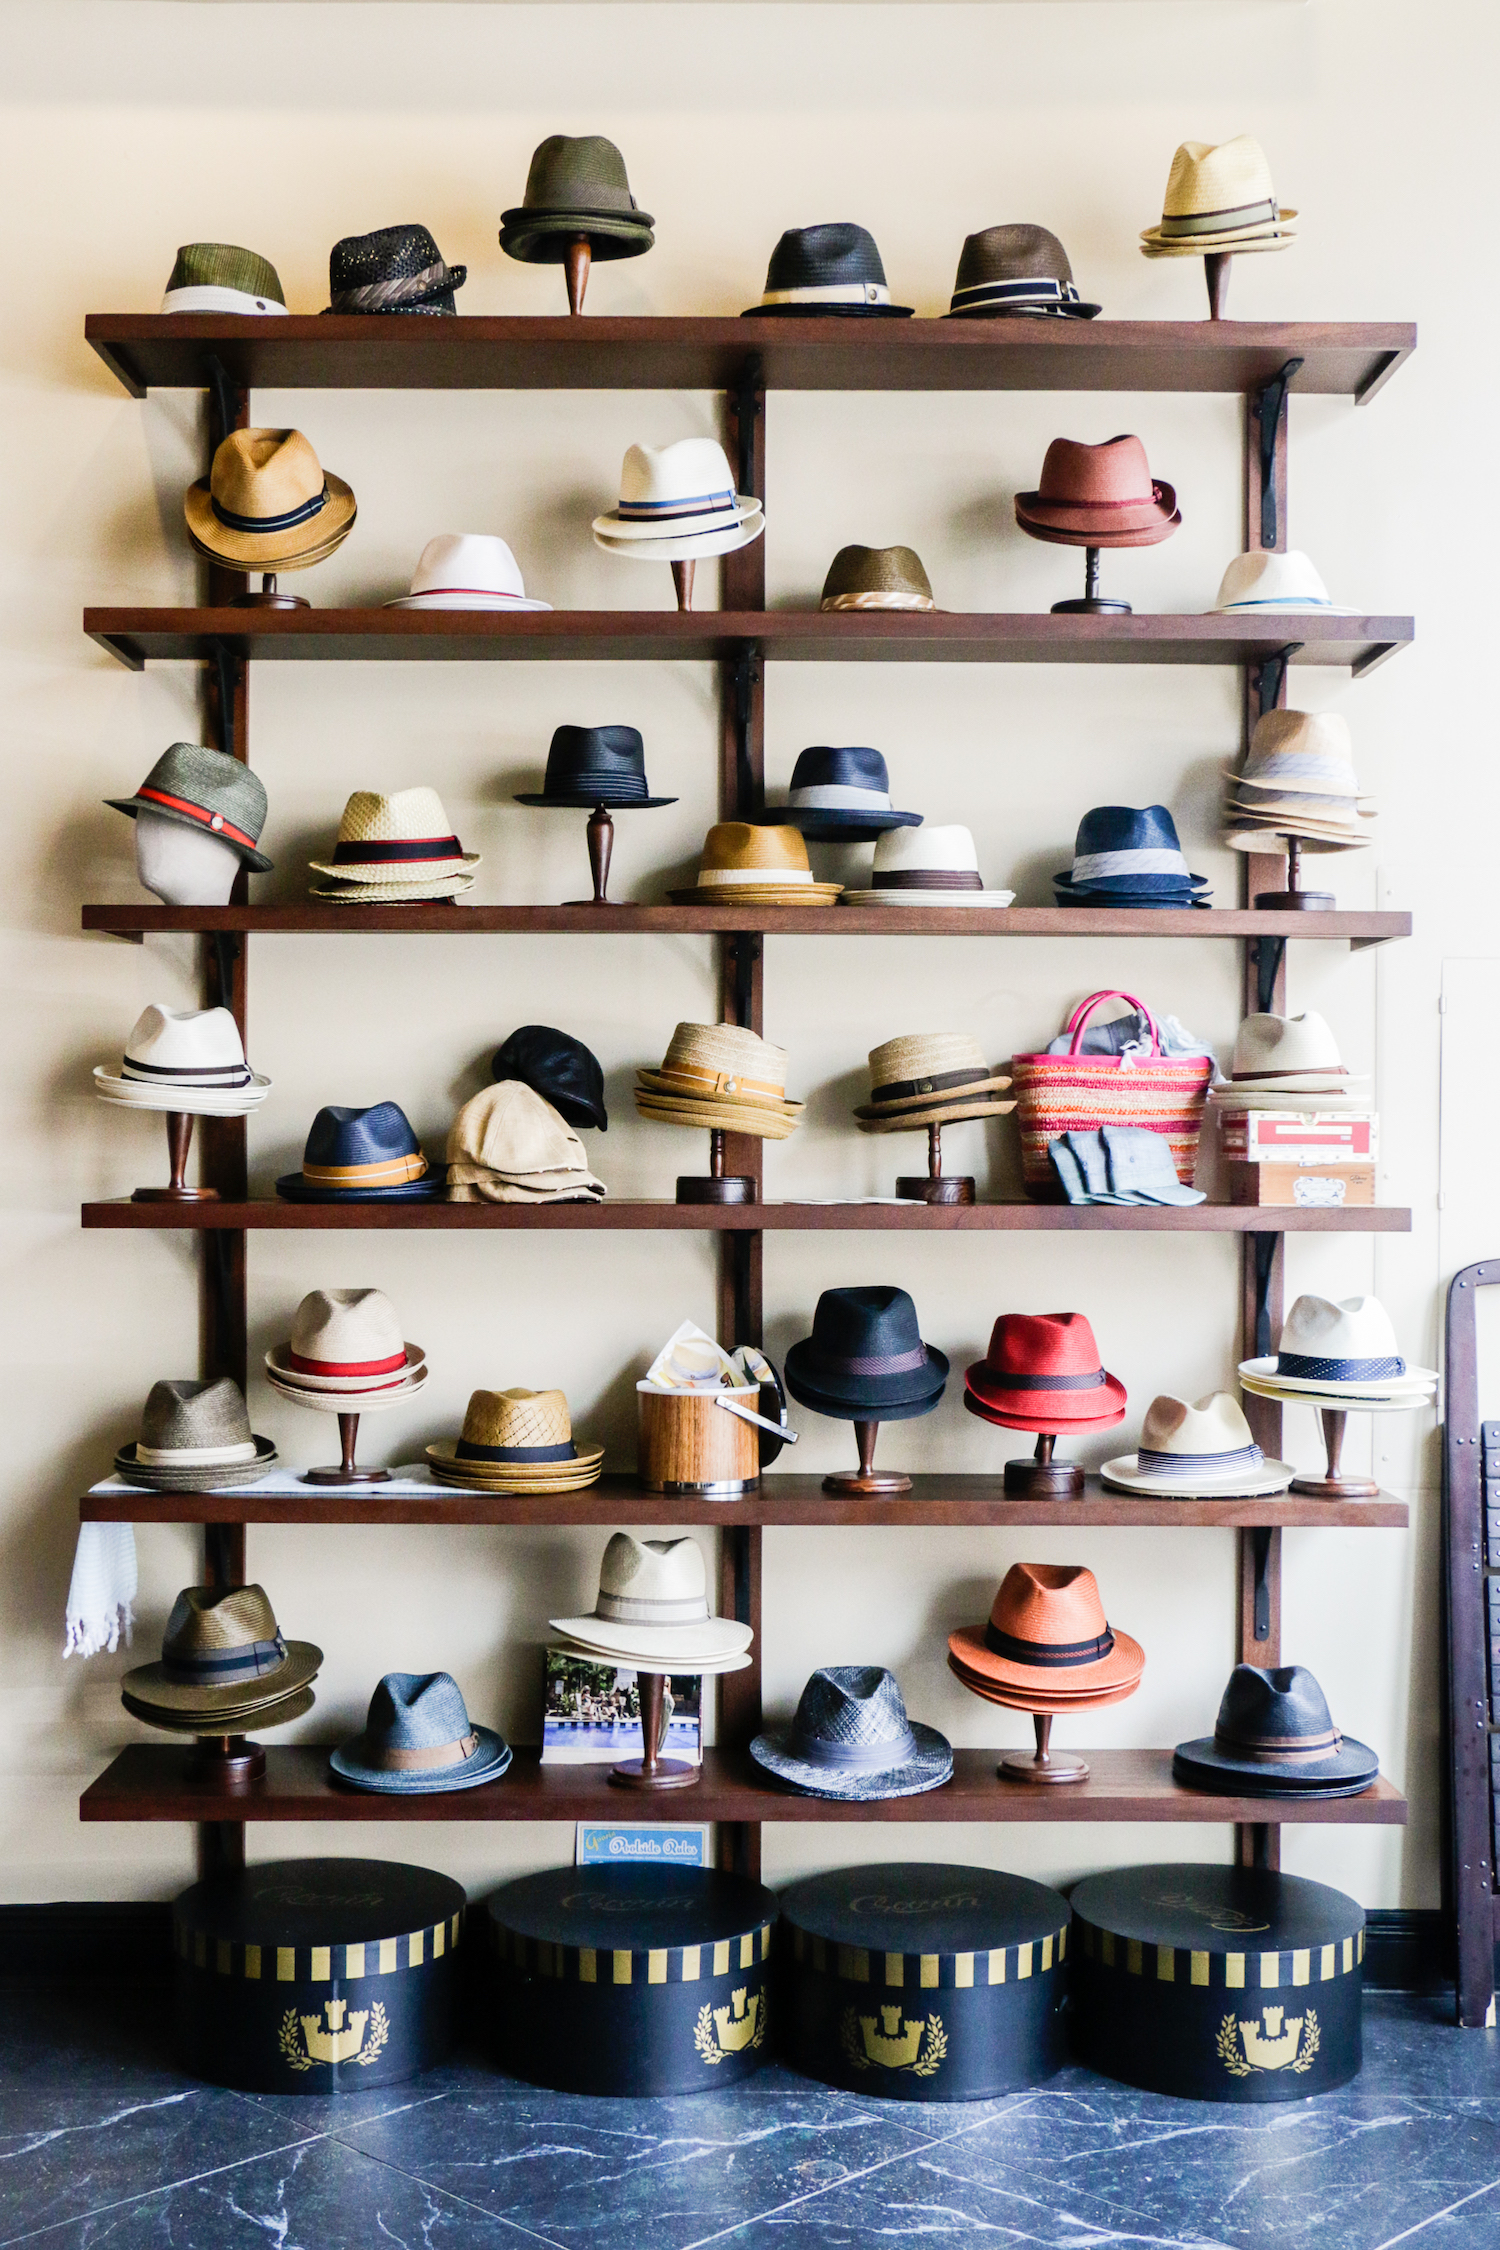 ee772612274b0 4516 Magazine St. Goorin Bros. Hat Shop (Photo  Rebecca Todd)